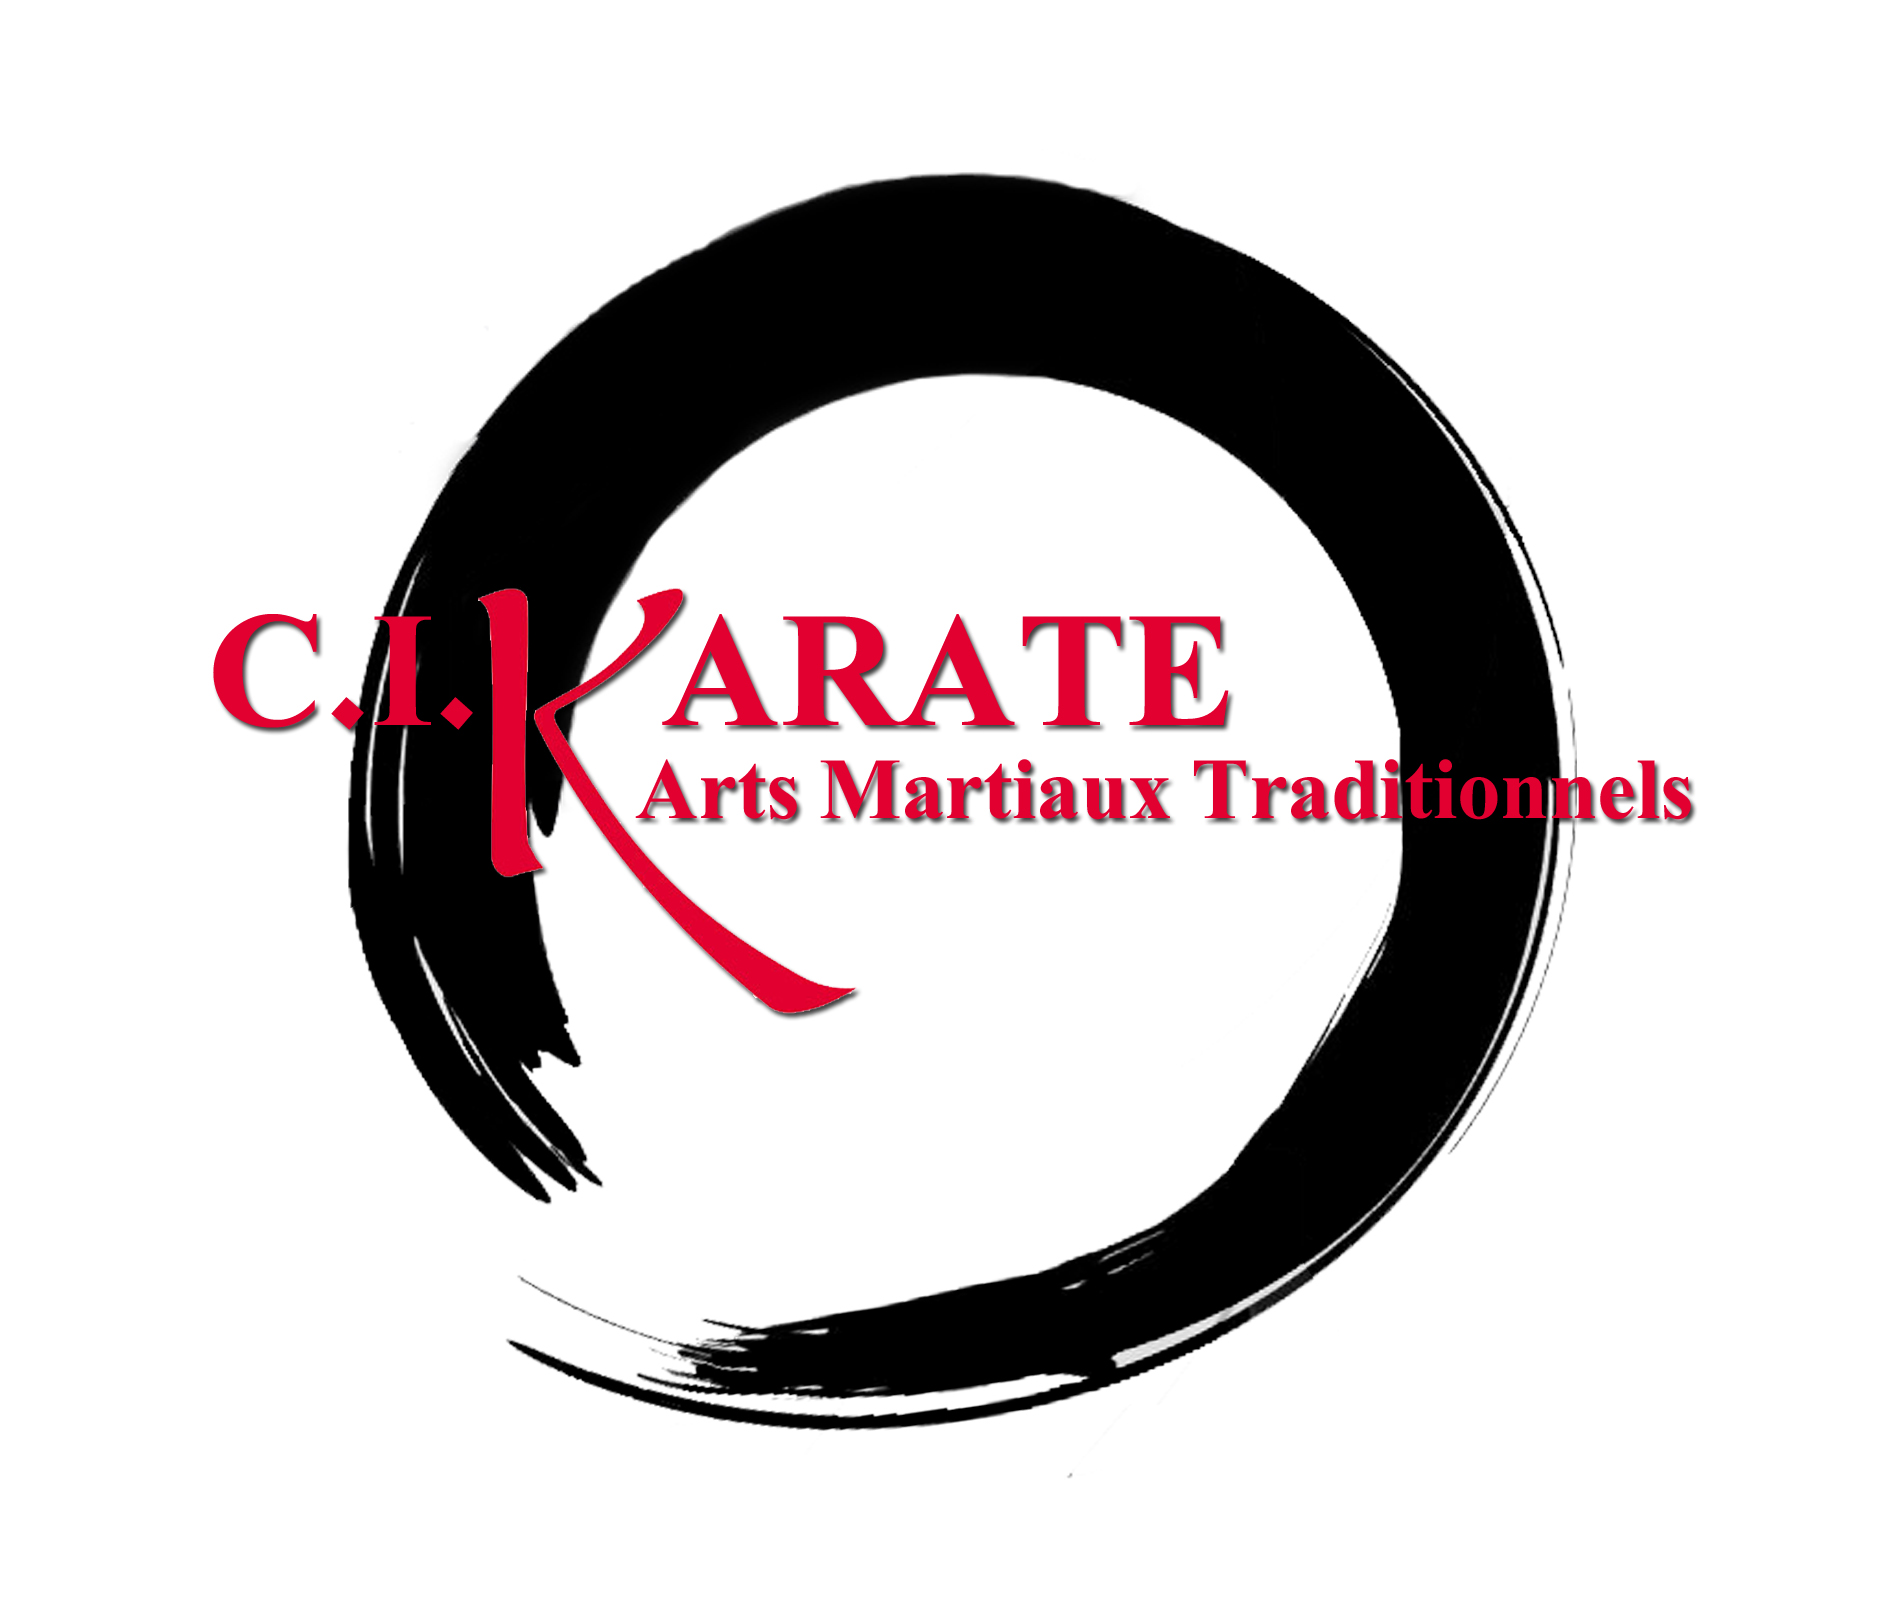 Ci Karaté, arts martiaux traditionnels